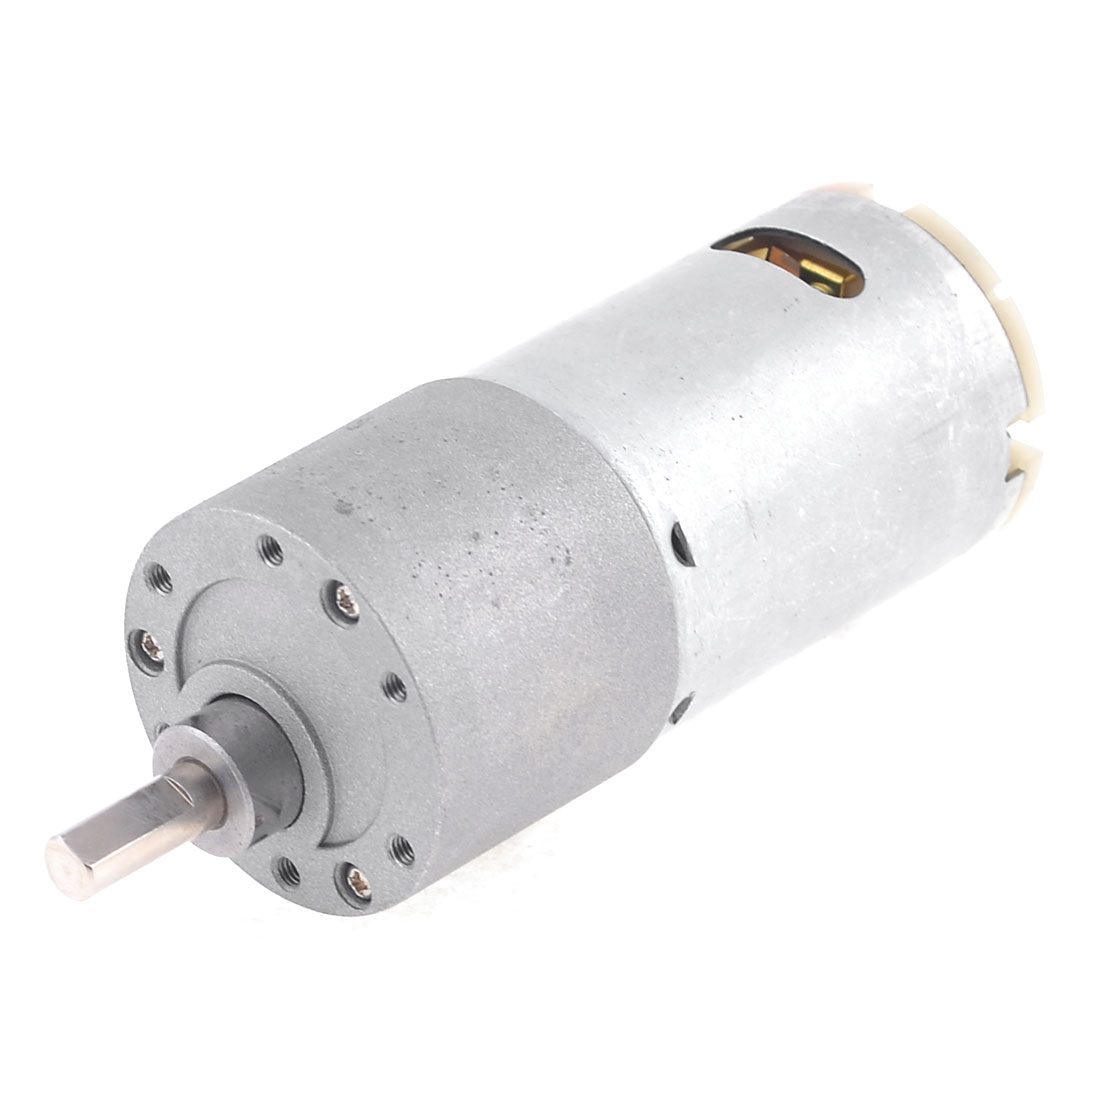 4RPM Rotate Speed Synchronous Reduction Electric Geared Motor 12VDC